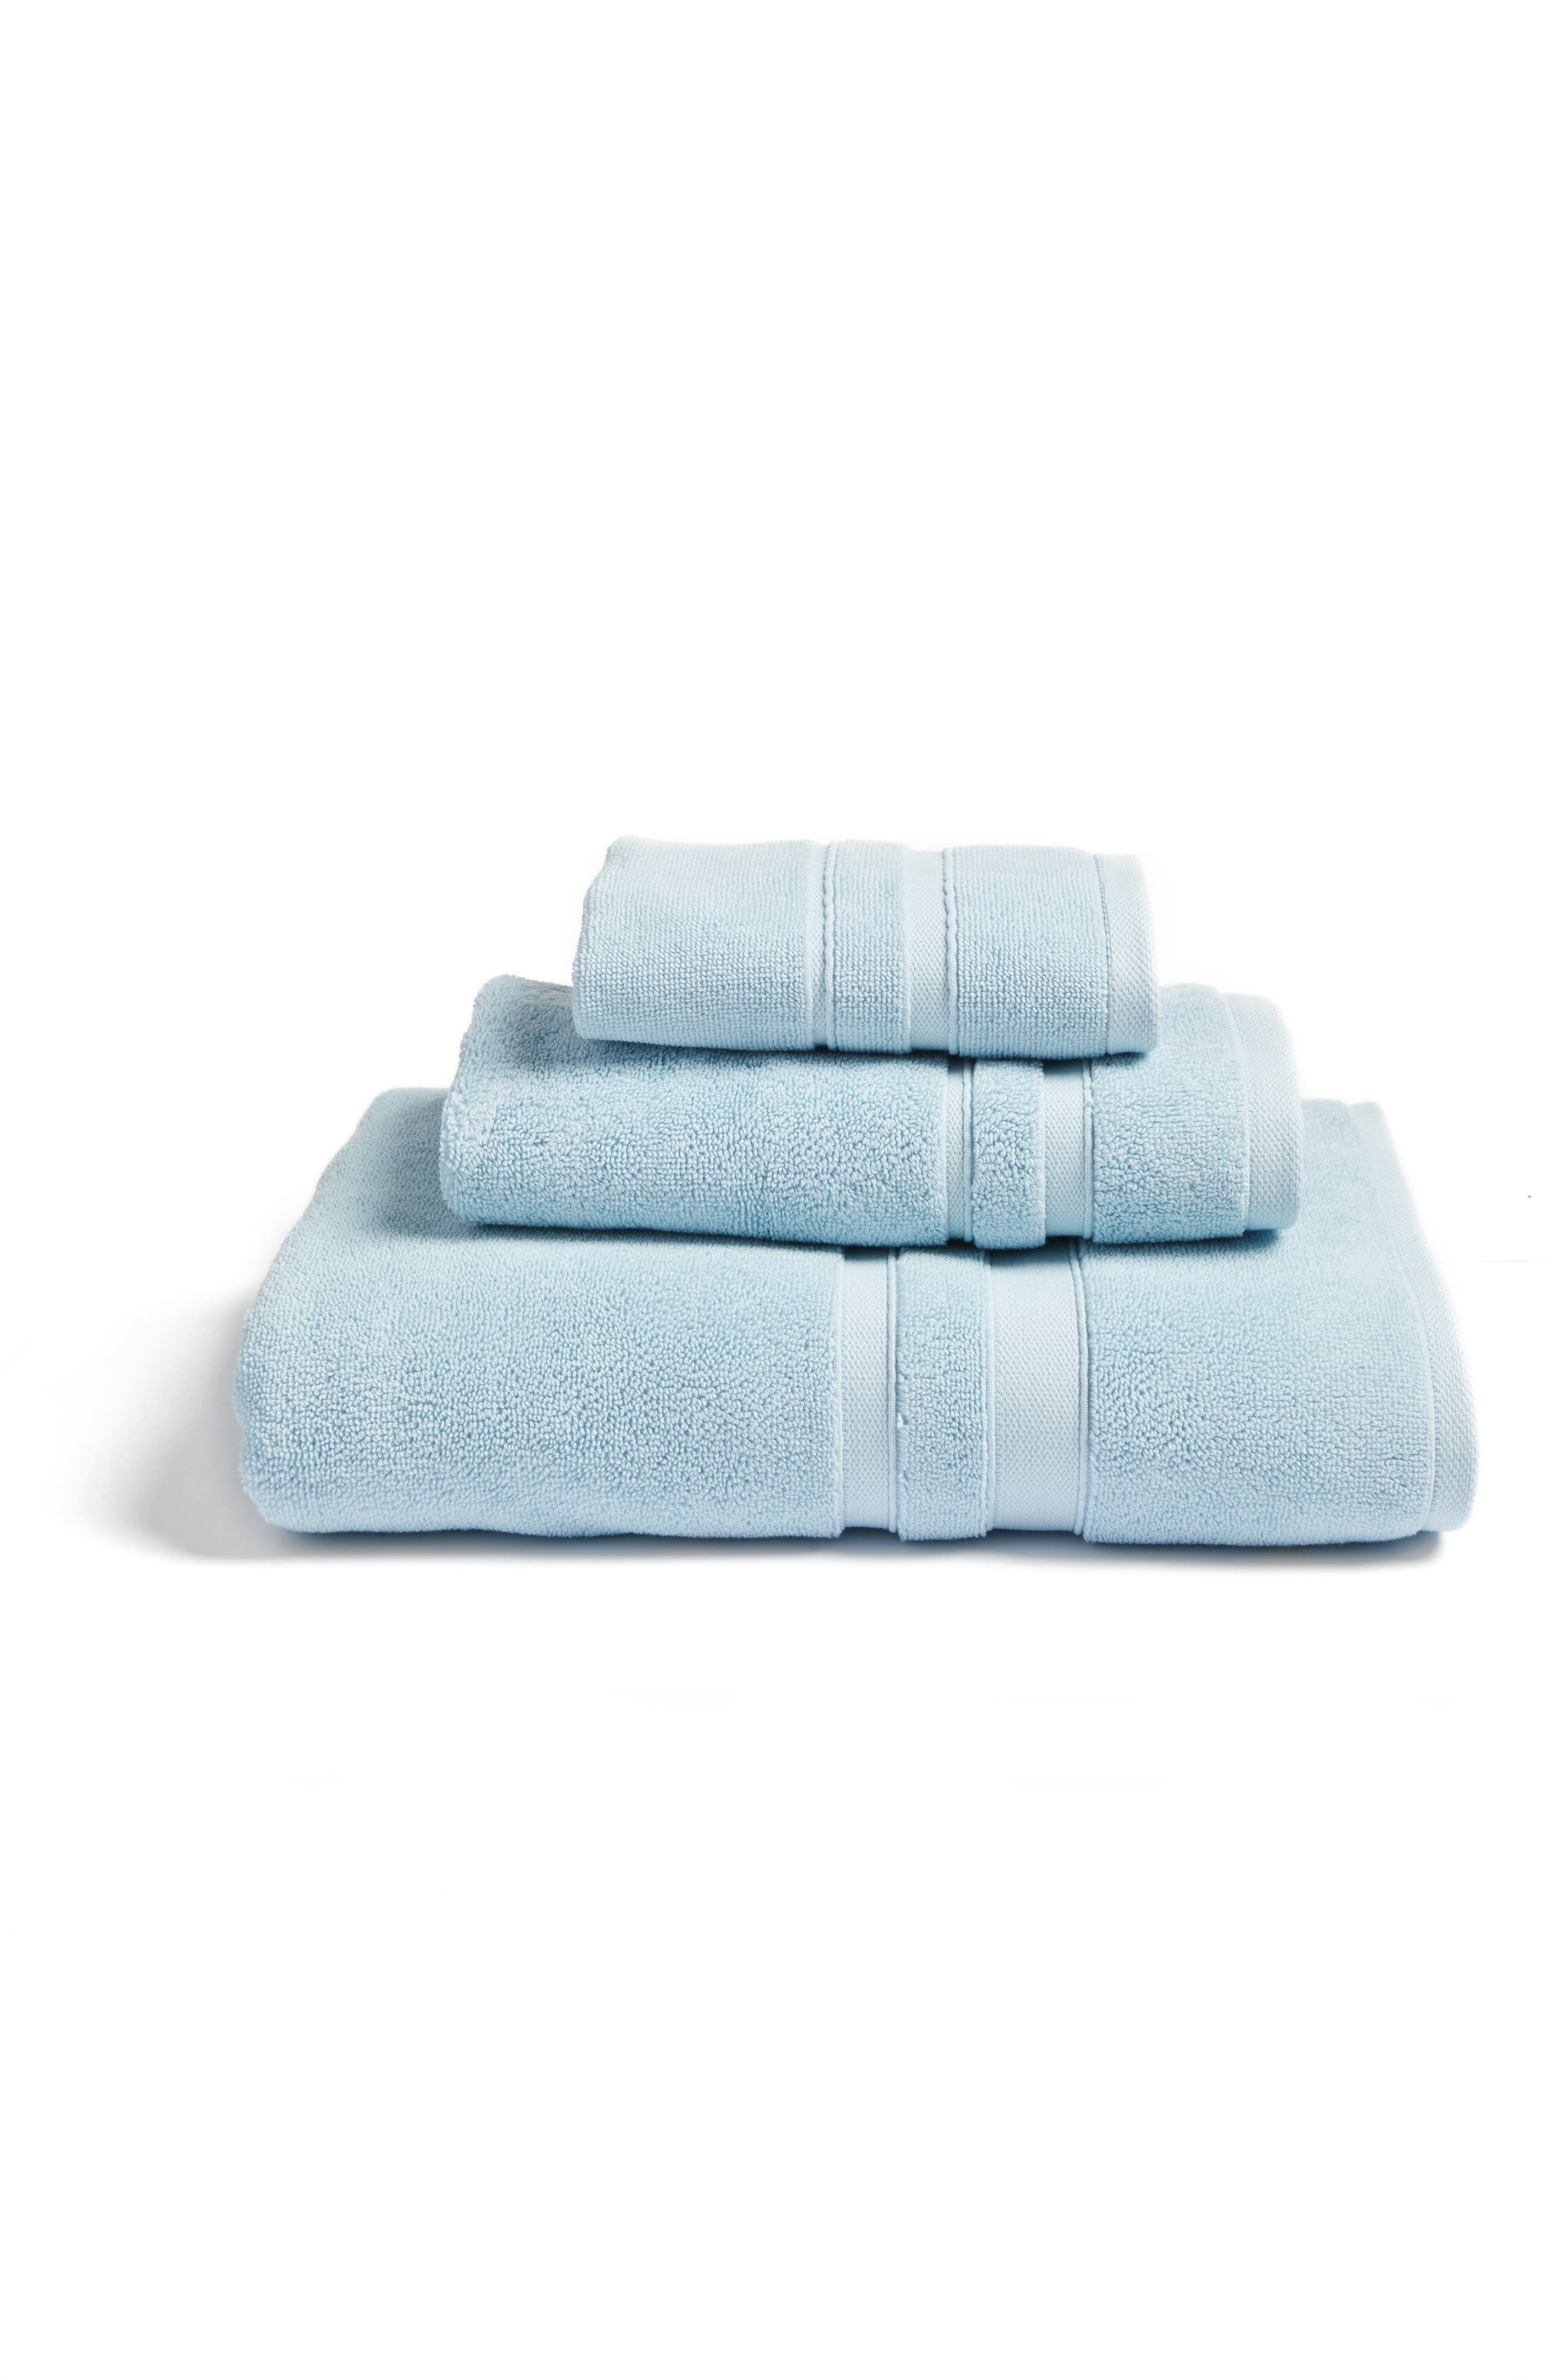 Studio 'Perennial' Combed Turkish Cotton Hand Towel,                             Alternate thumbnail 2, color,                             CHRYSTAL BLUE